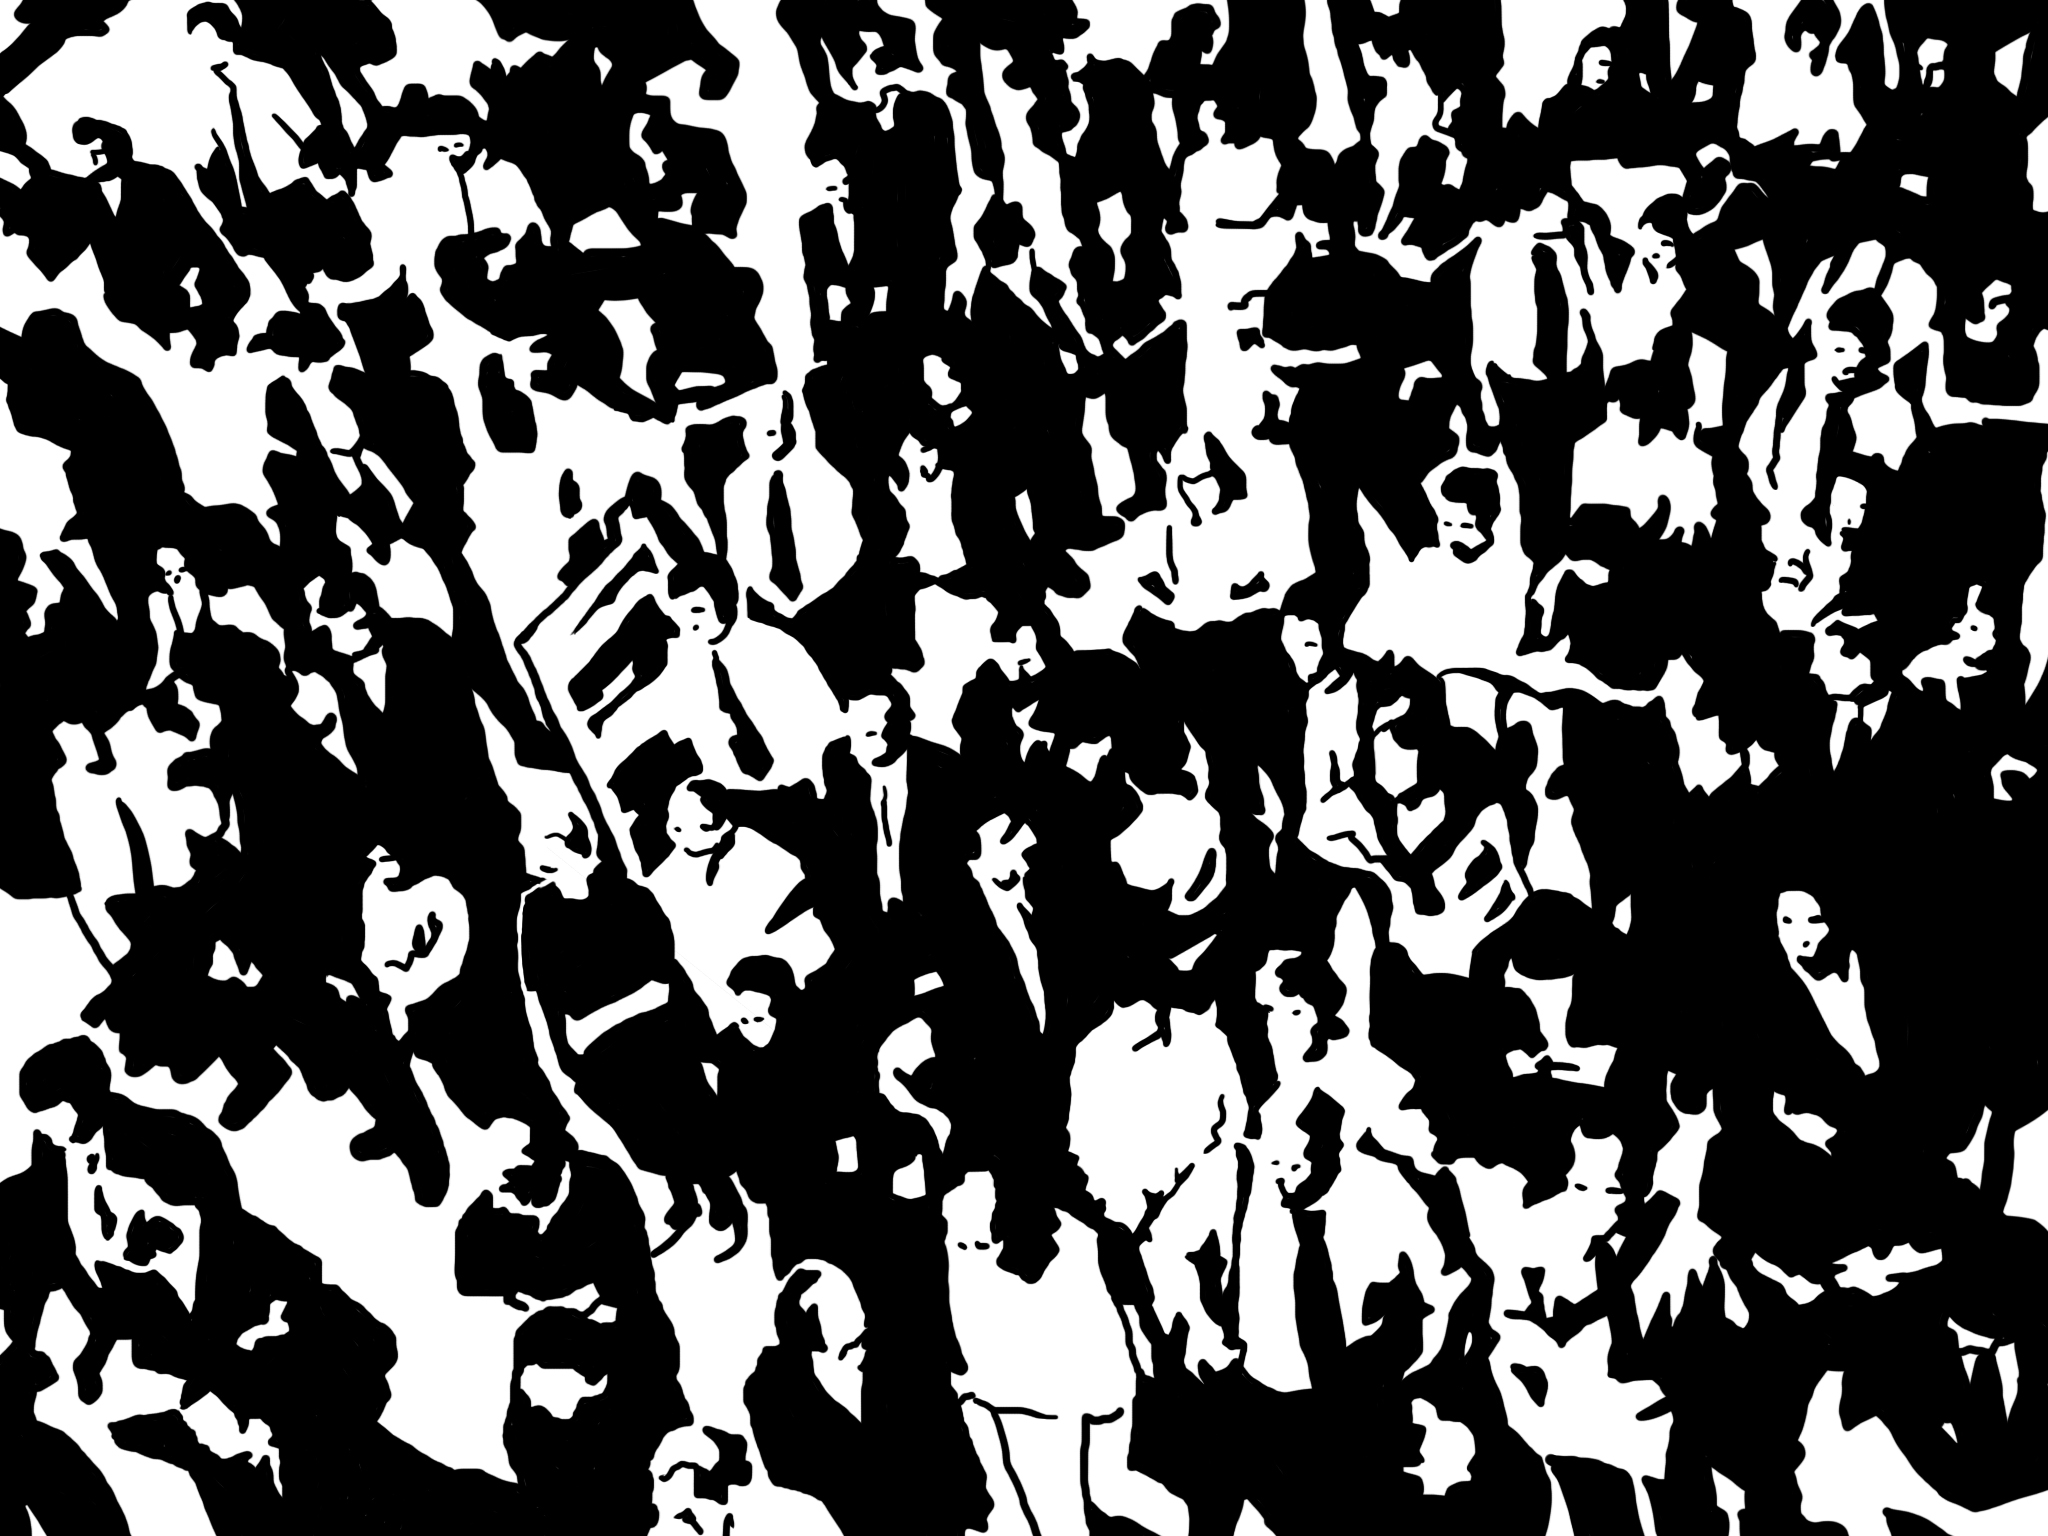 2048x1536 Crowd Everything Is Wild